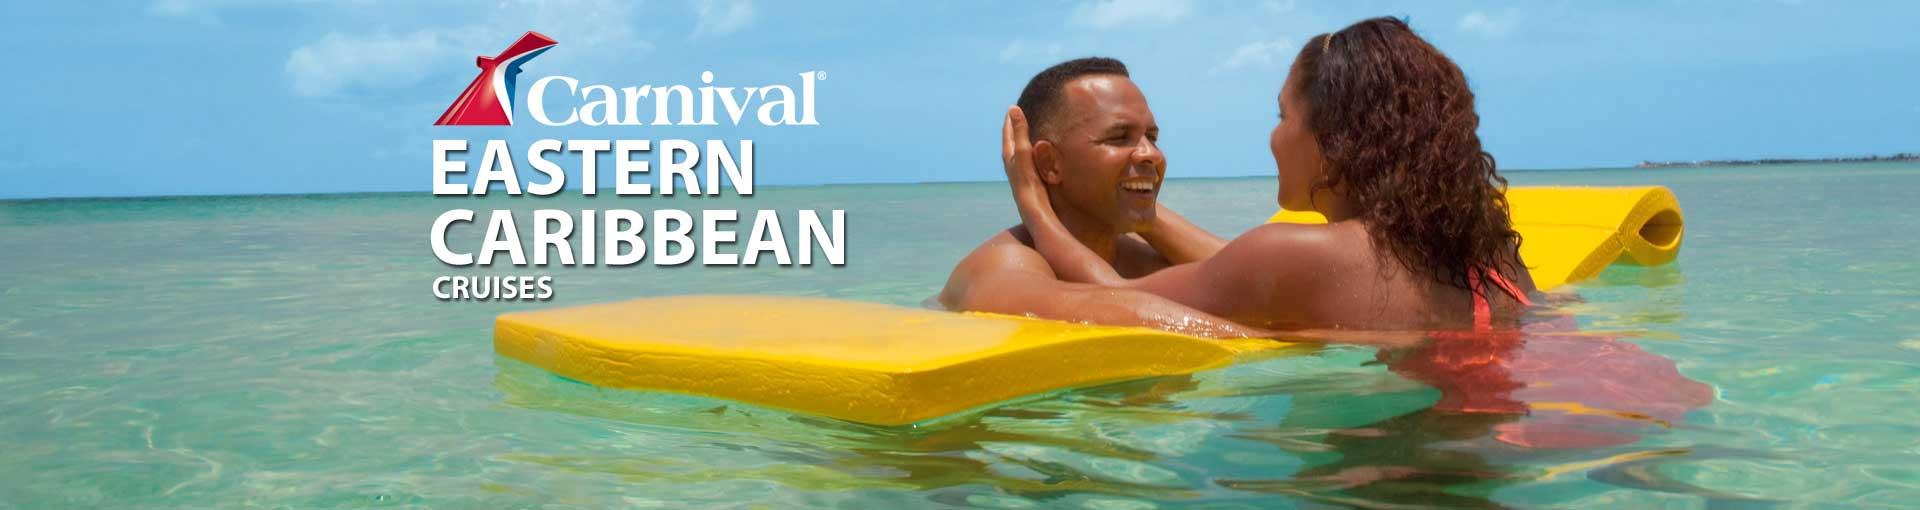 Carnival Cruise Lines Eastern Caribbean Cruises